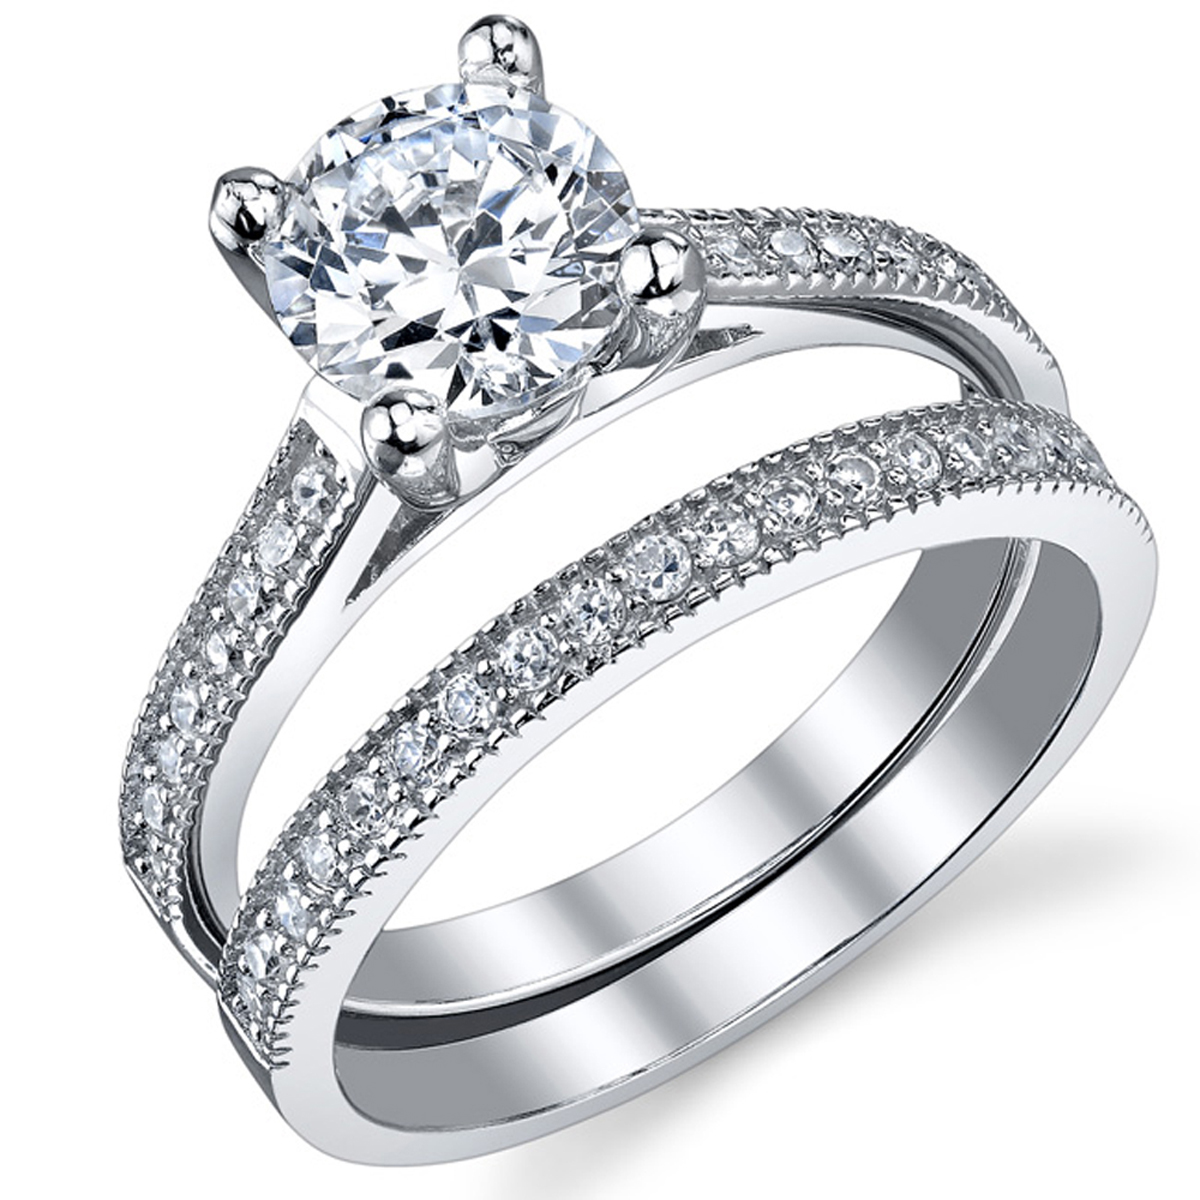 1.25 Carat Round Brilliant Cubic Zirconia Sterling Silver 925 Wedding Engagement Ring Band Set